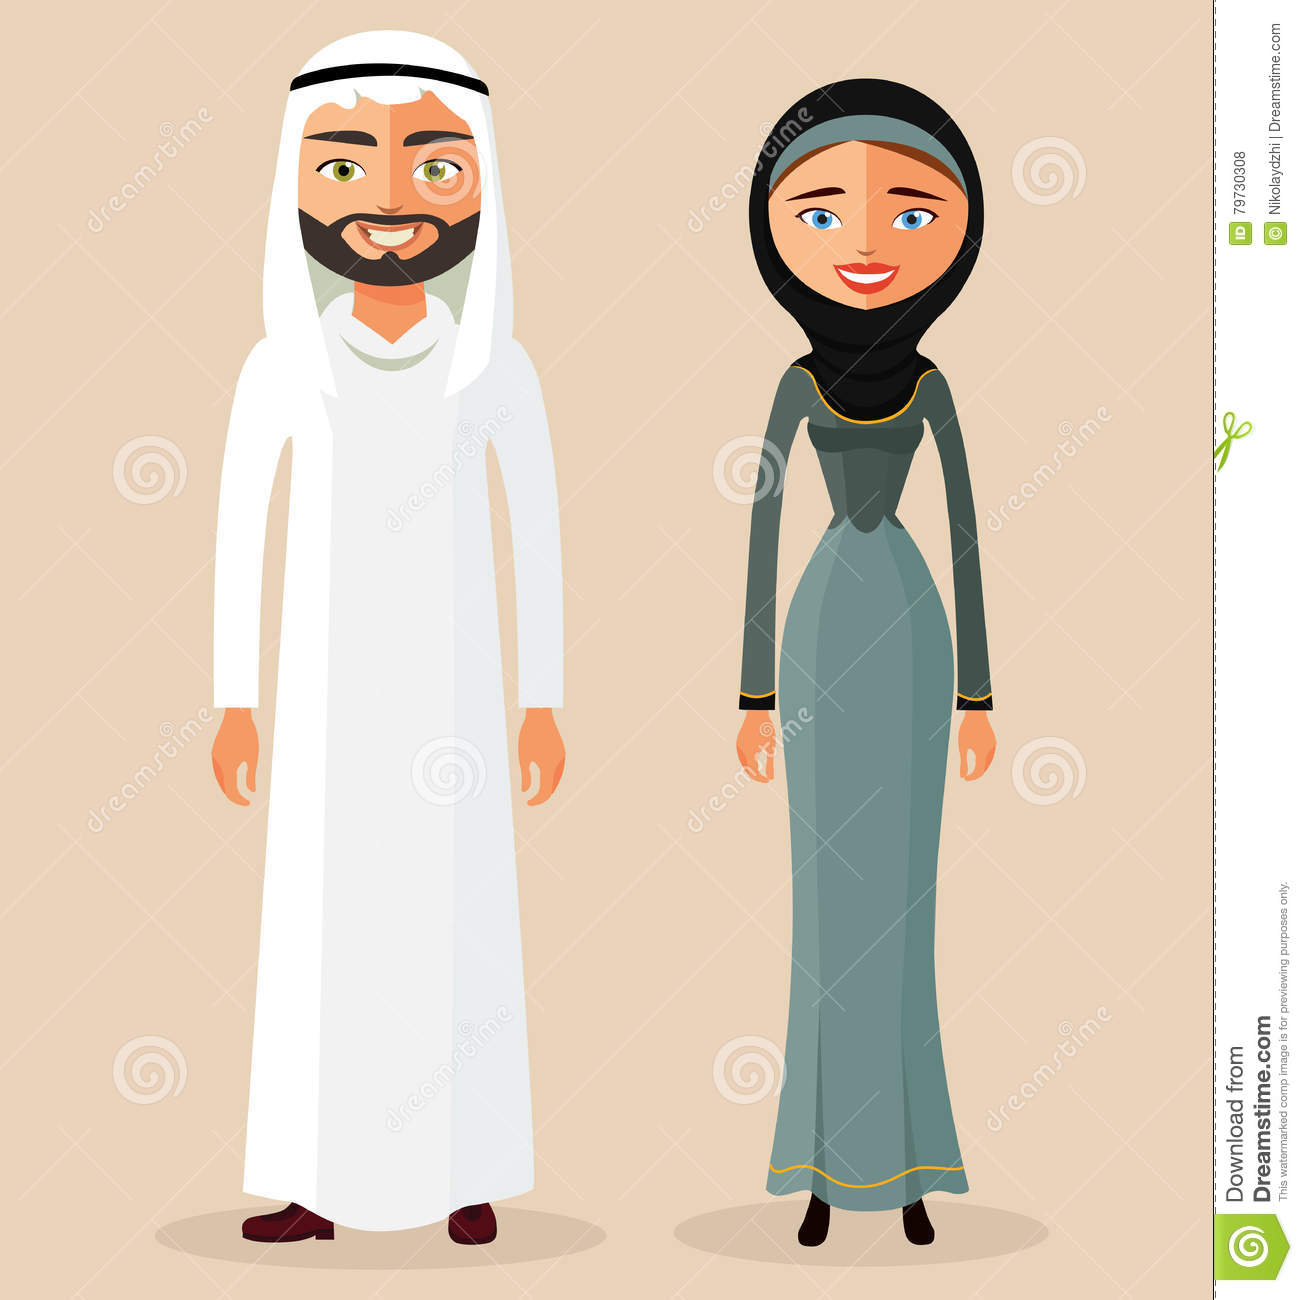 flat muslim women dating site Asian profiles for dating are popular among american and european partner who seek their soulmate at asiandatecom top 1000 ladies.